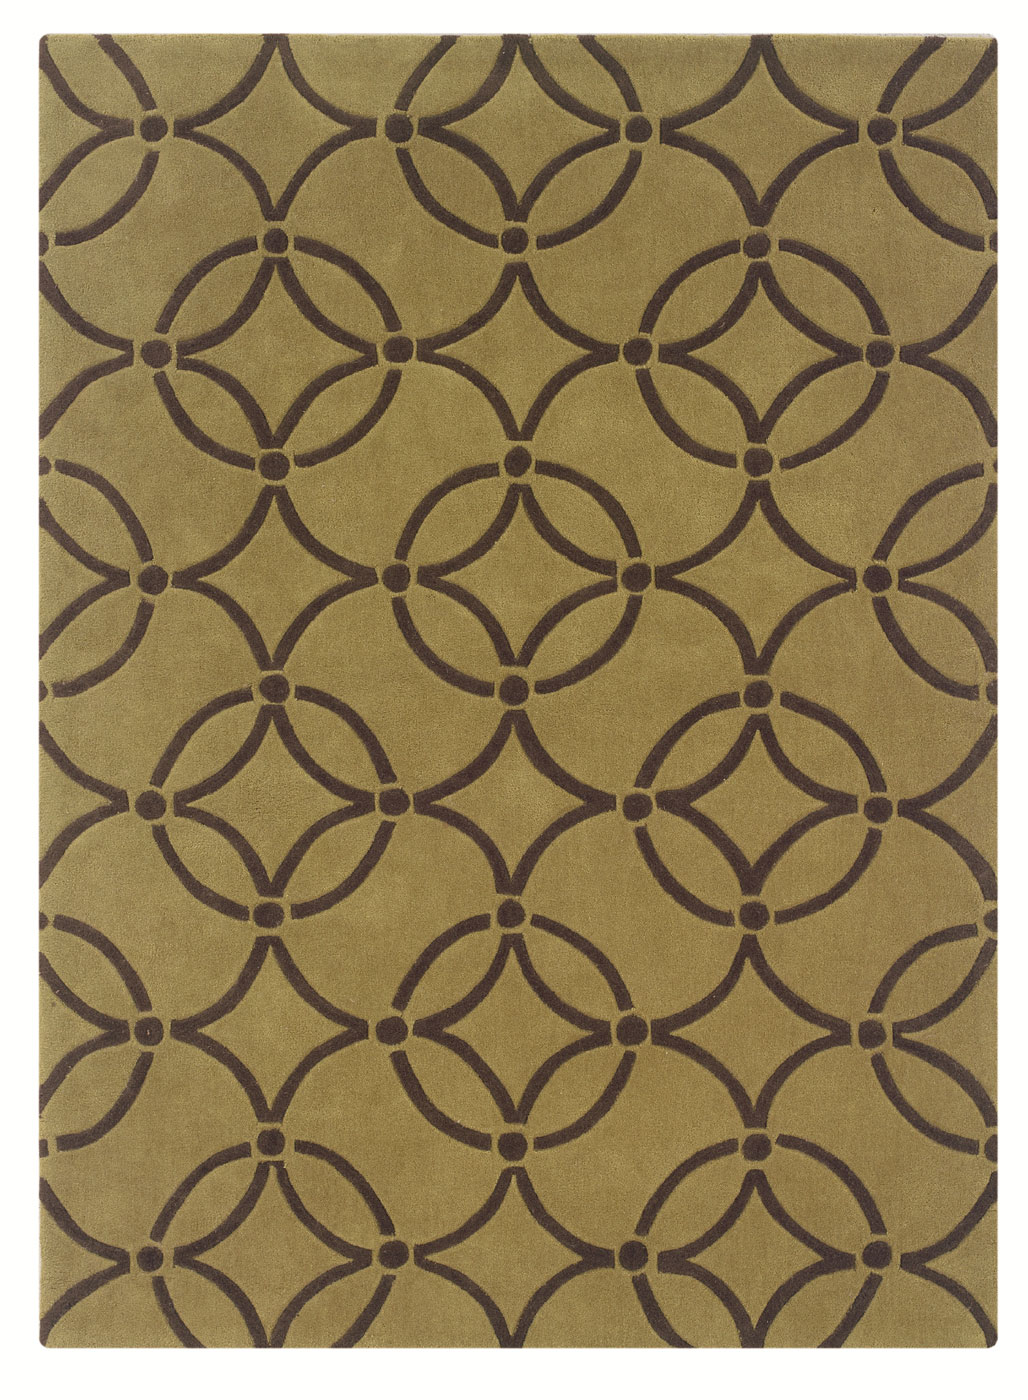 trio collection rug by linon home decor in patterned rugs